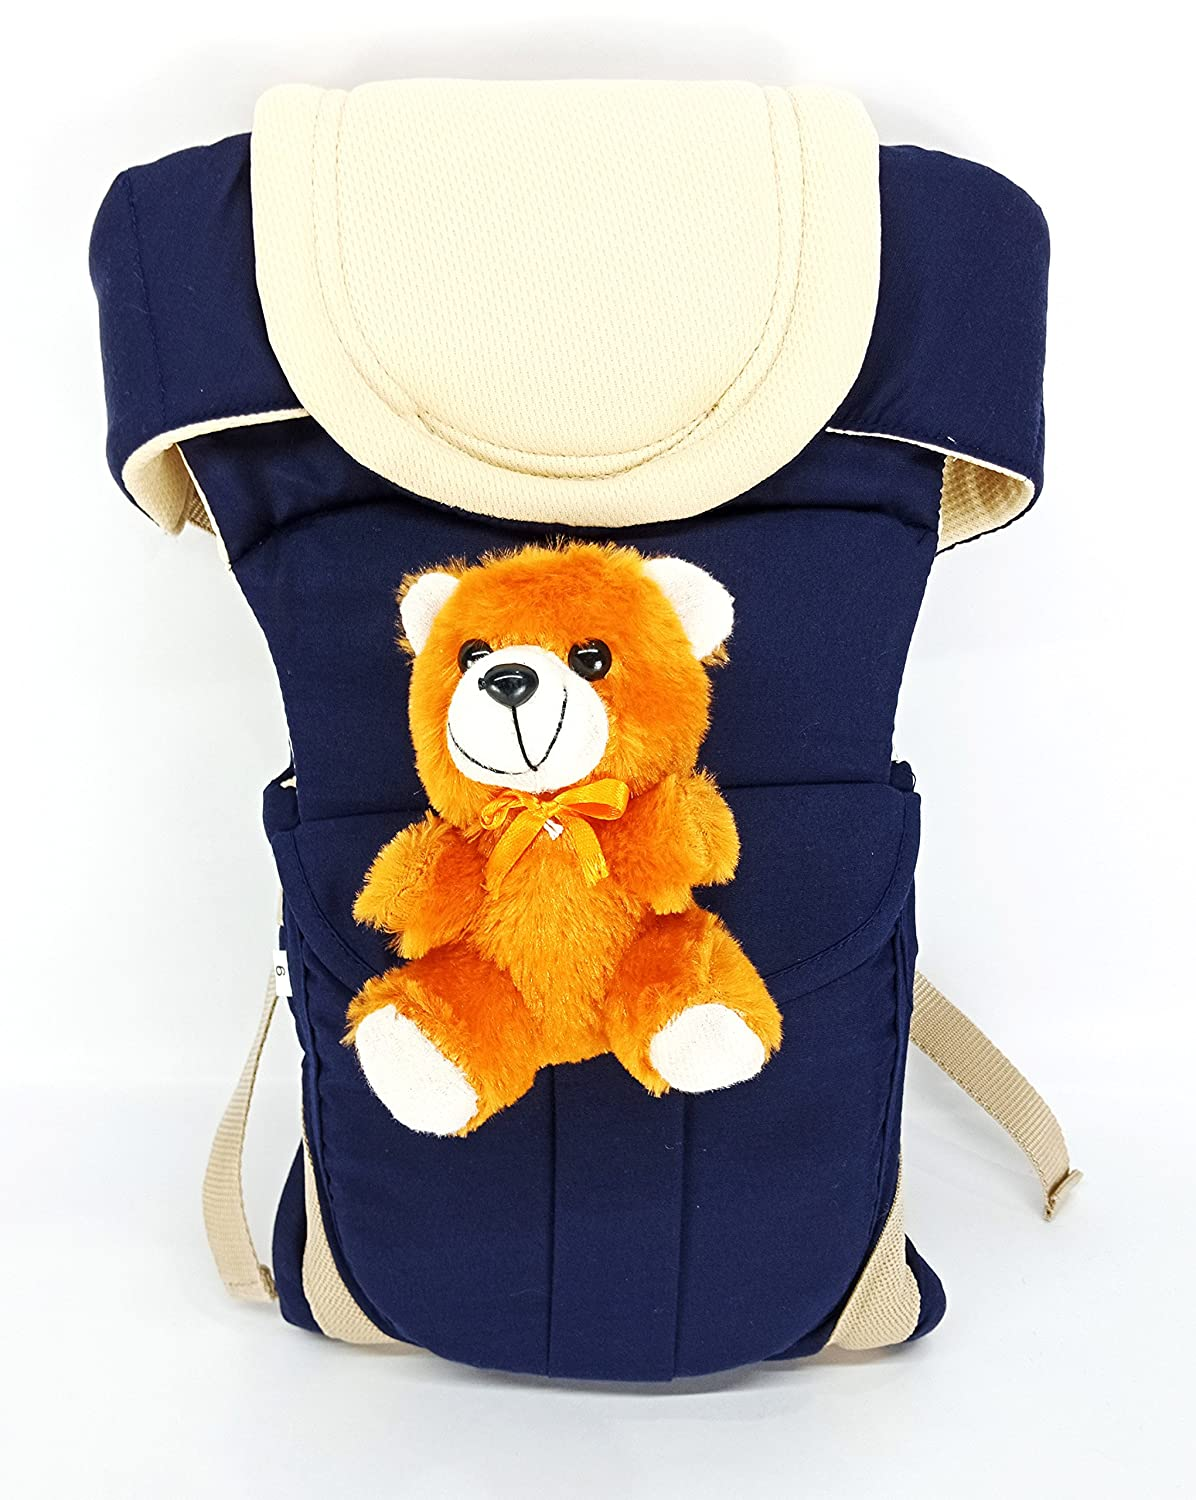 ebe5393e394 Buy Aayat Kids ® Prime Super Strong Multi Carry Position Safer with Play  Teddy X15 Online at Low Prices in India - Amazon.in